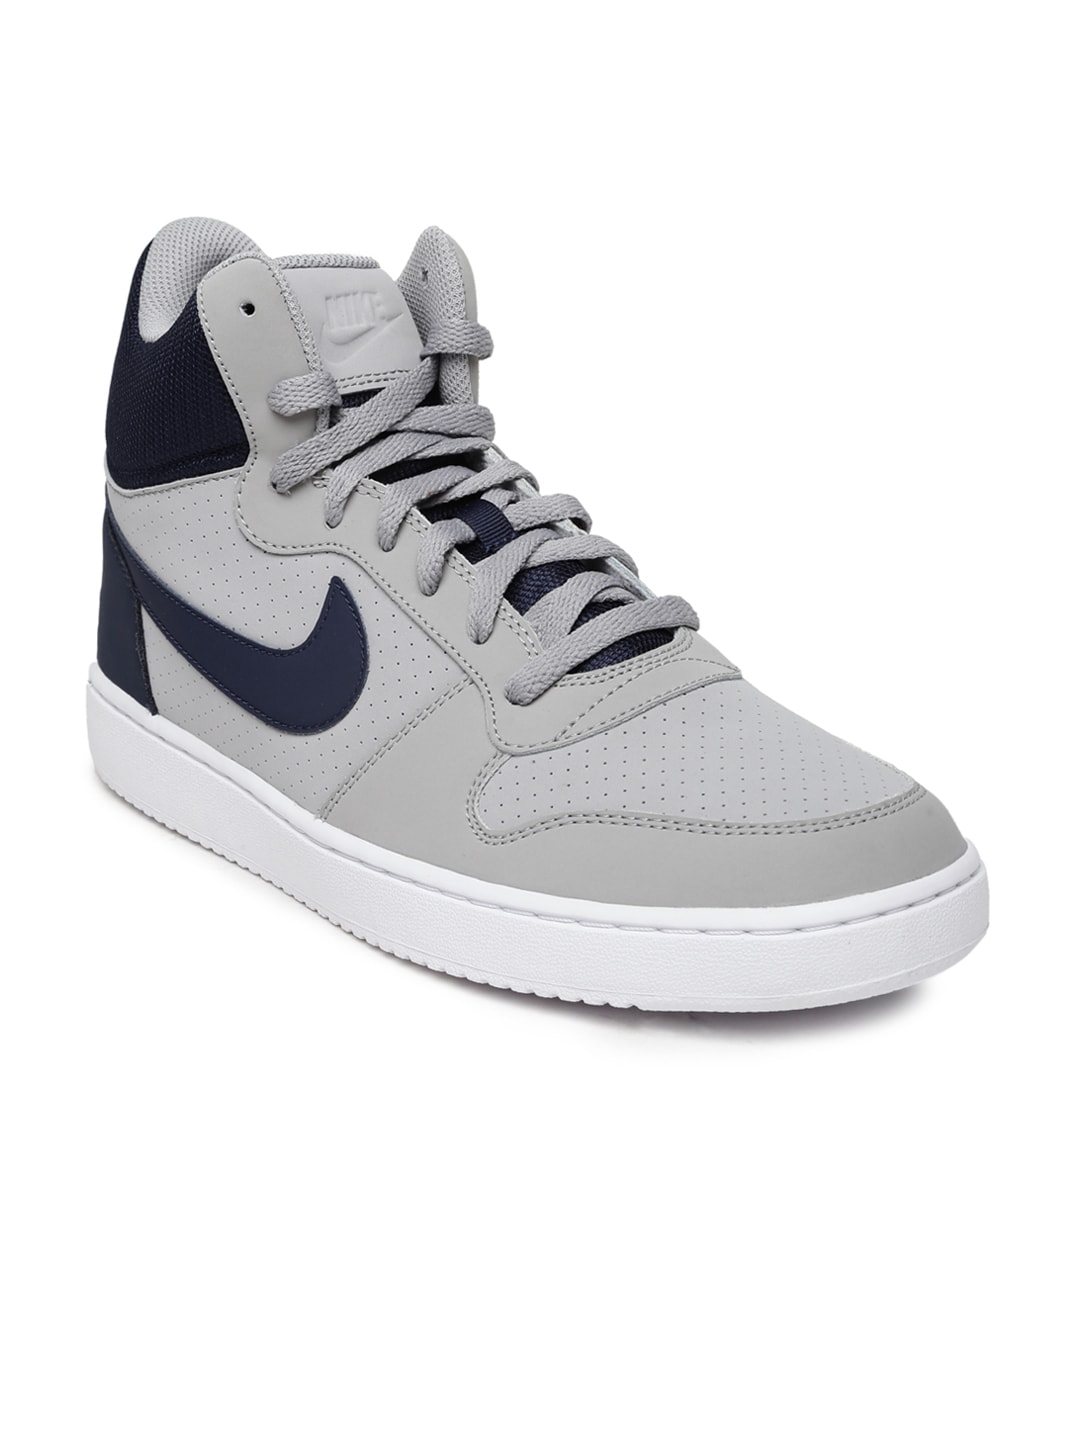 nike casual shoes price list in india 06 08 jul 2017